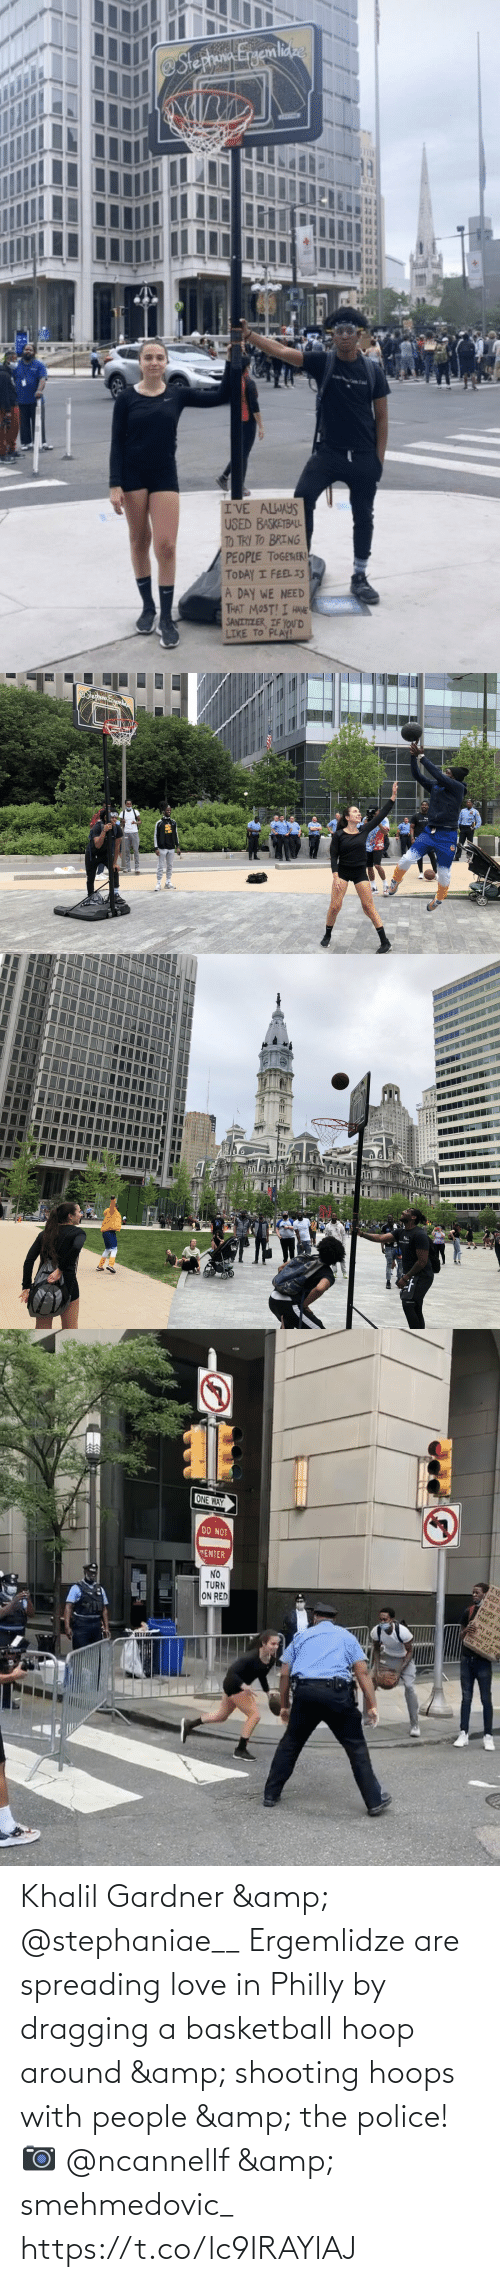 around: Khalil Gardner & @stephaniae__ Ergemlidze are spreading love in Philly by dragging a basketball hoop around & shooting hoops with people & the police!   📷 @ncannellf & smehmedovic_ https://t.co/lc9IRAYlAJ